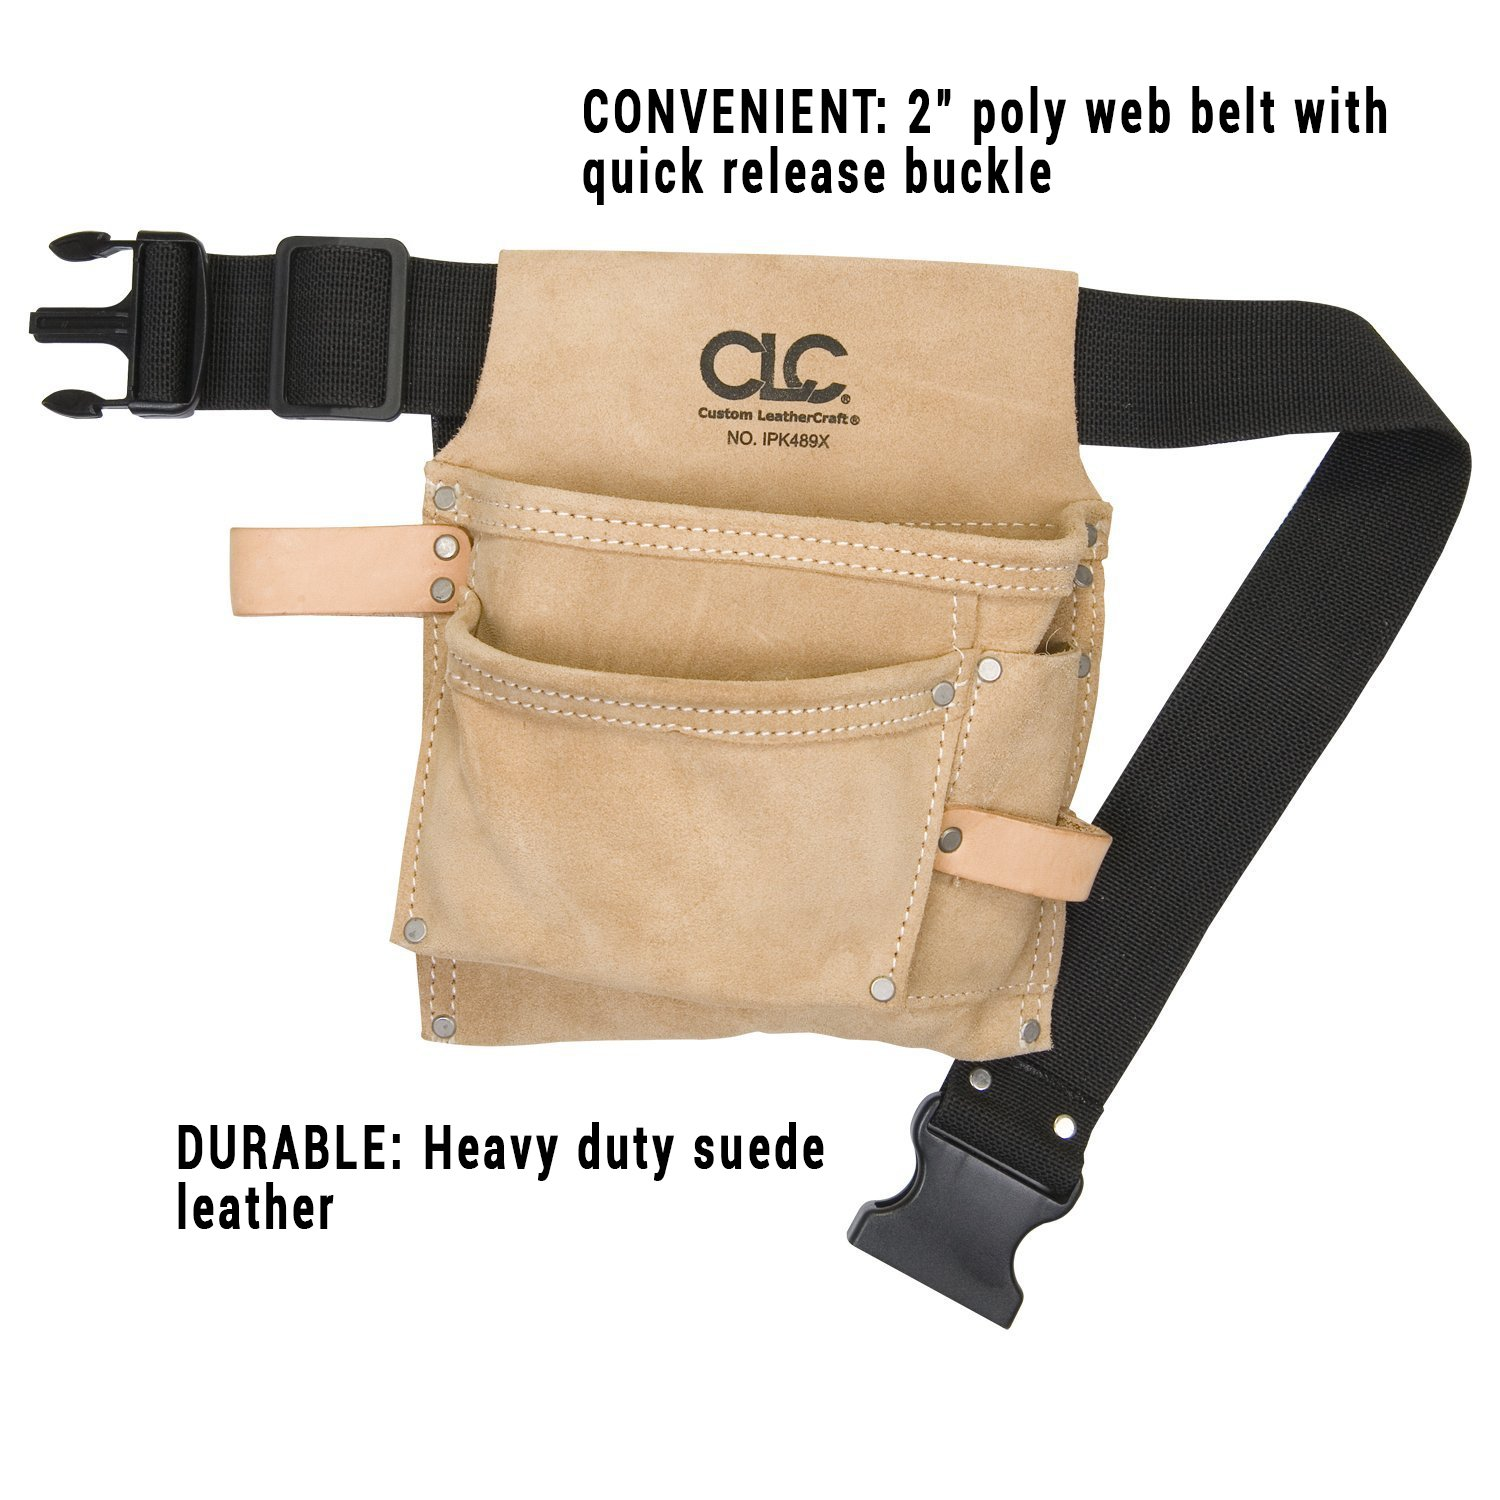 eb551244c8c CLC Custom Leathercraft IP489X Suede Tool Bag & Poly Web Belt, 3 Pocket